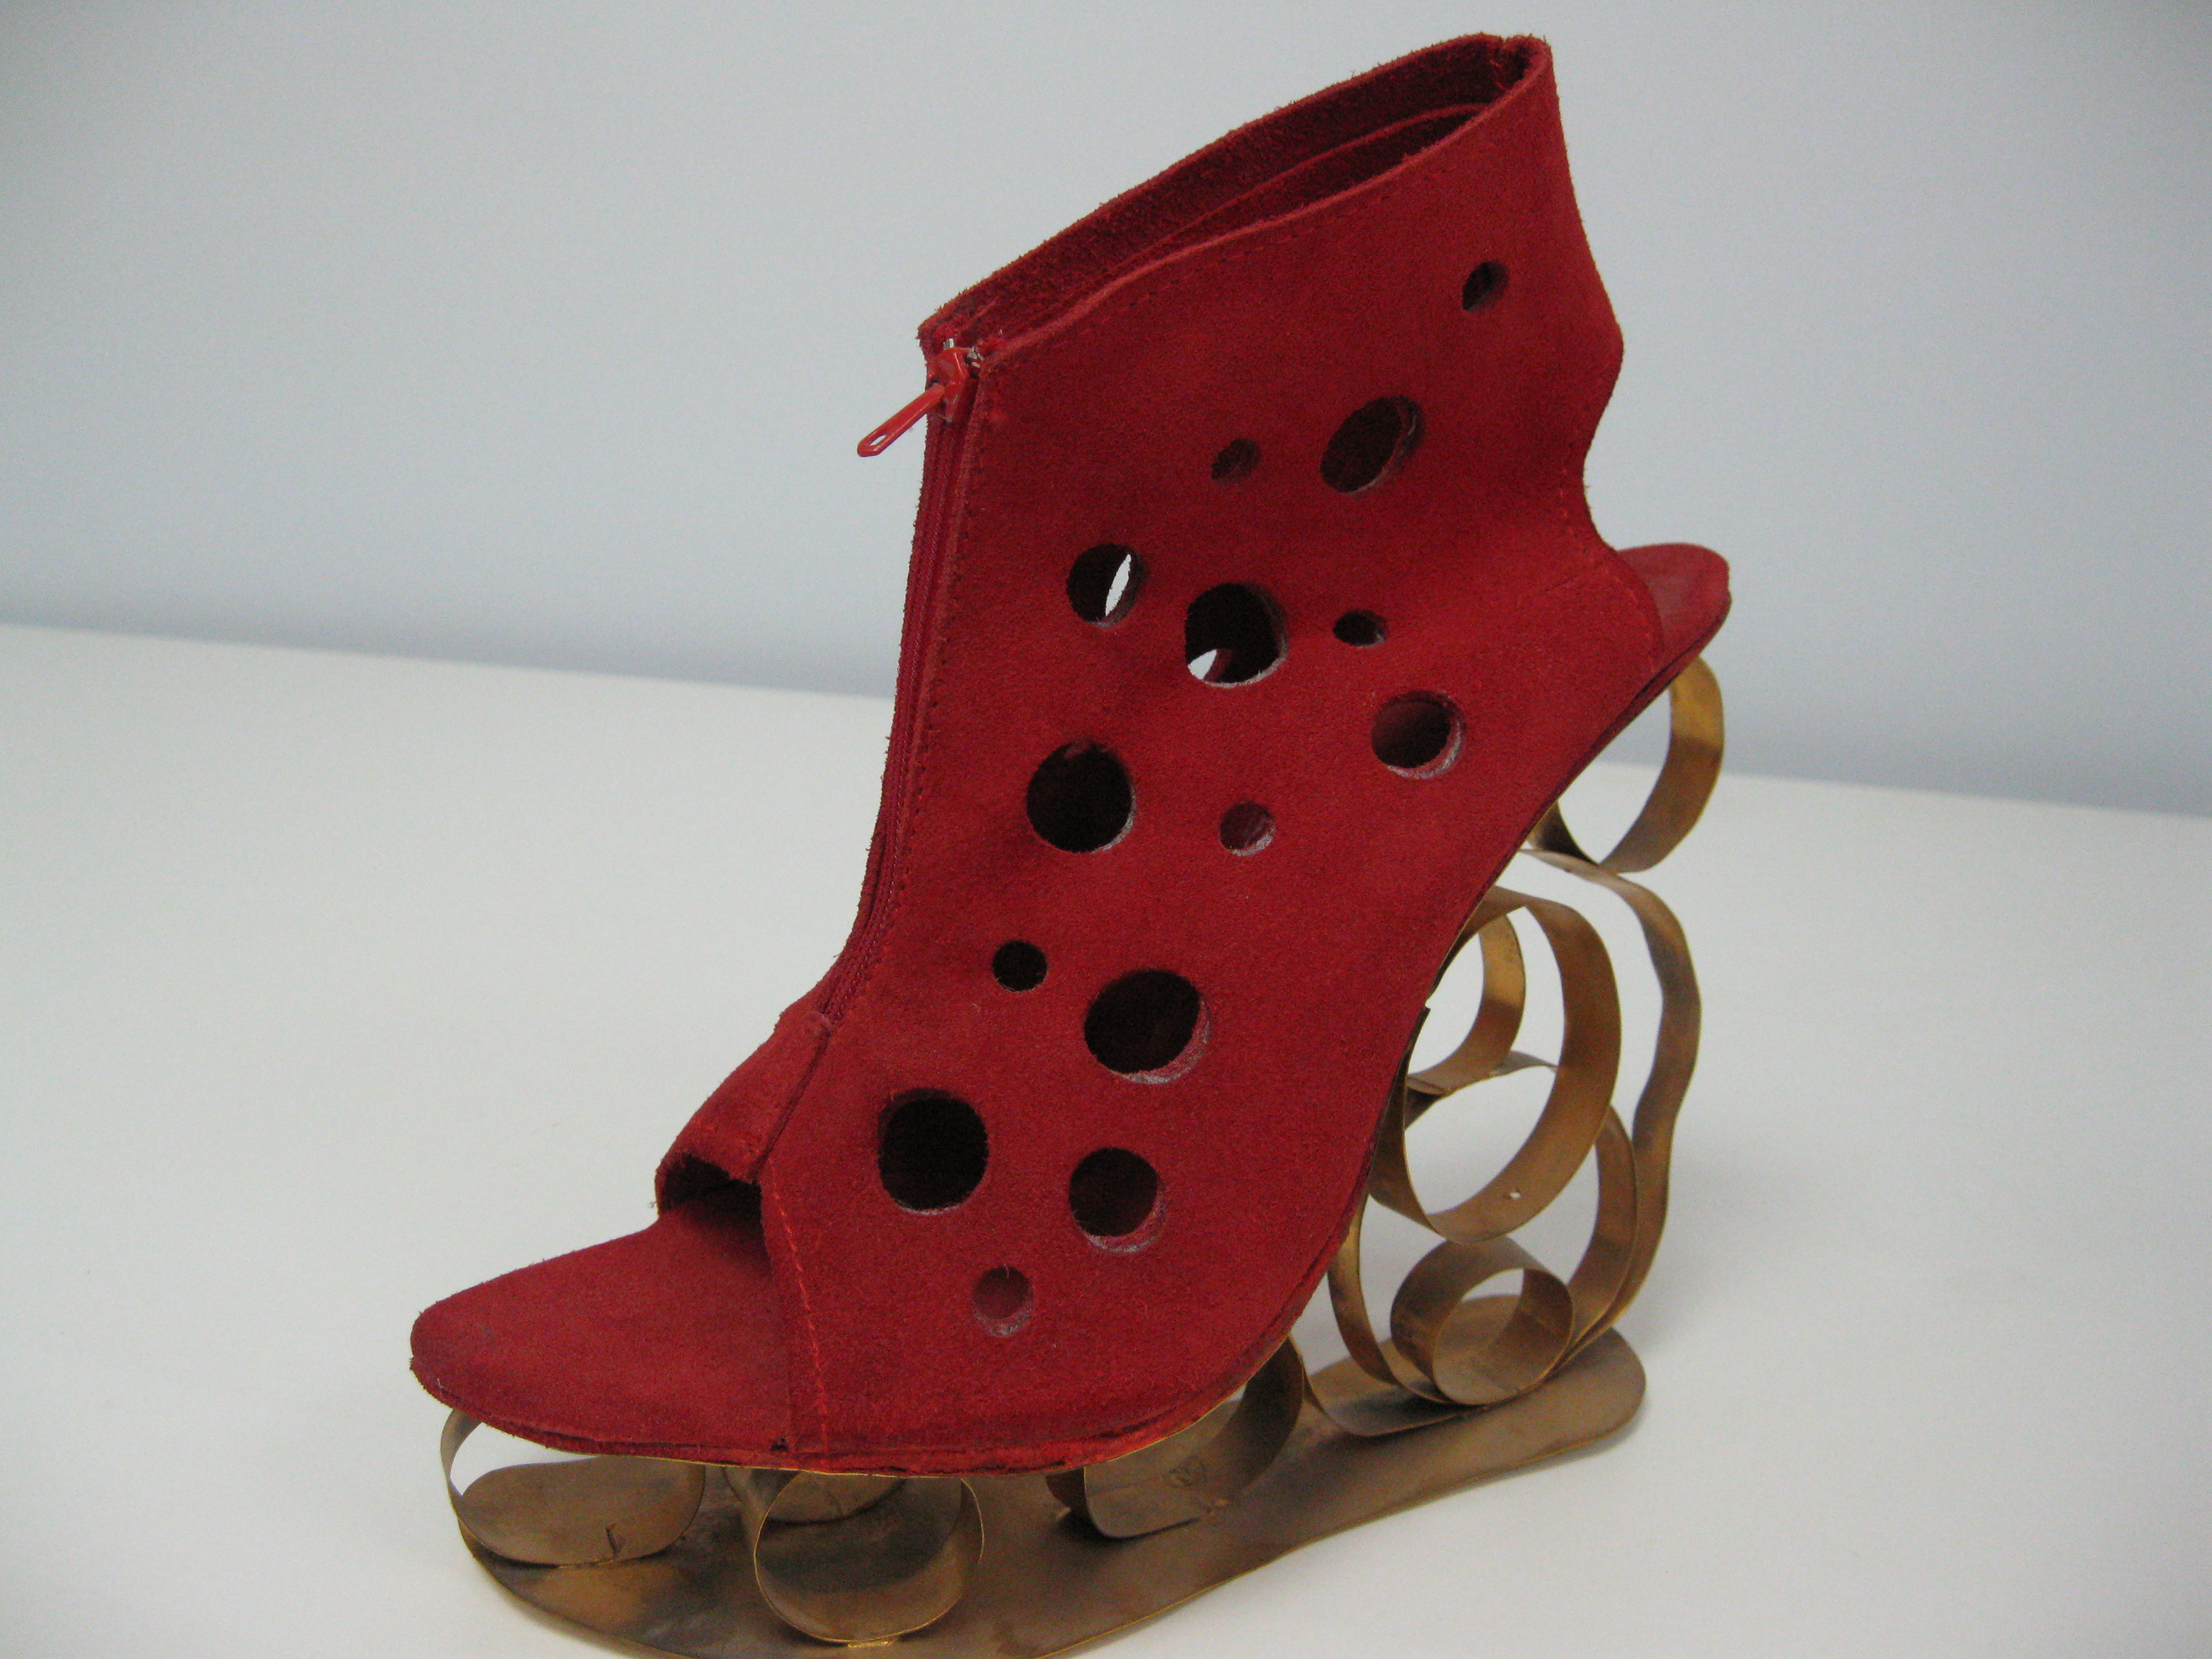 file:chaussure femme rouge - wikimedia commons